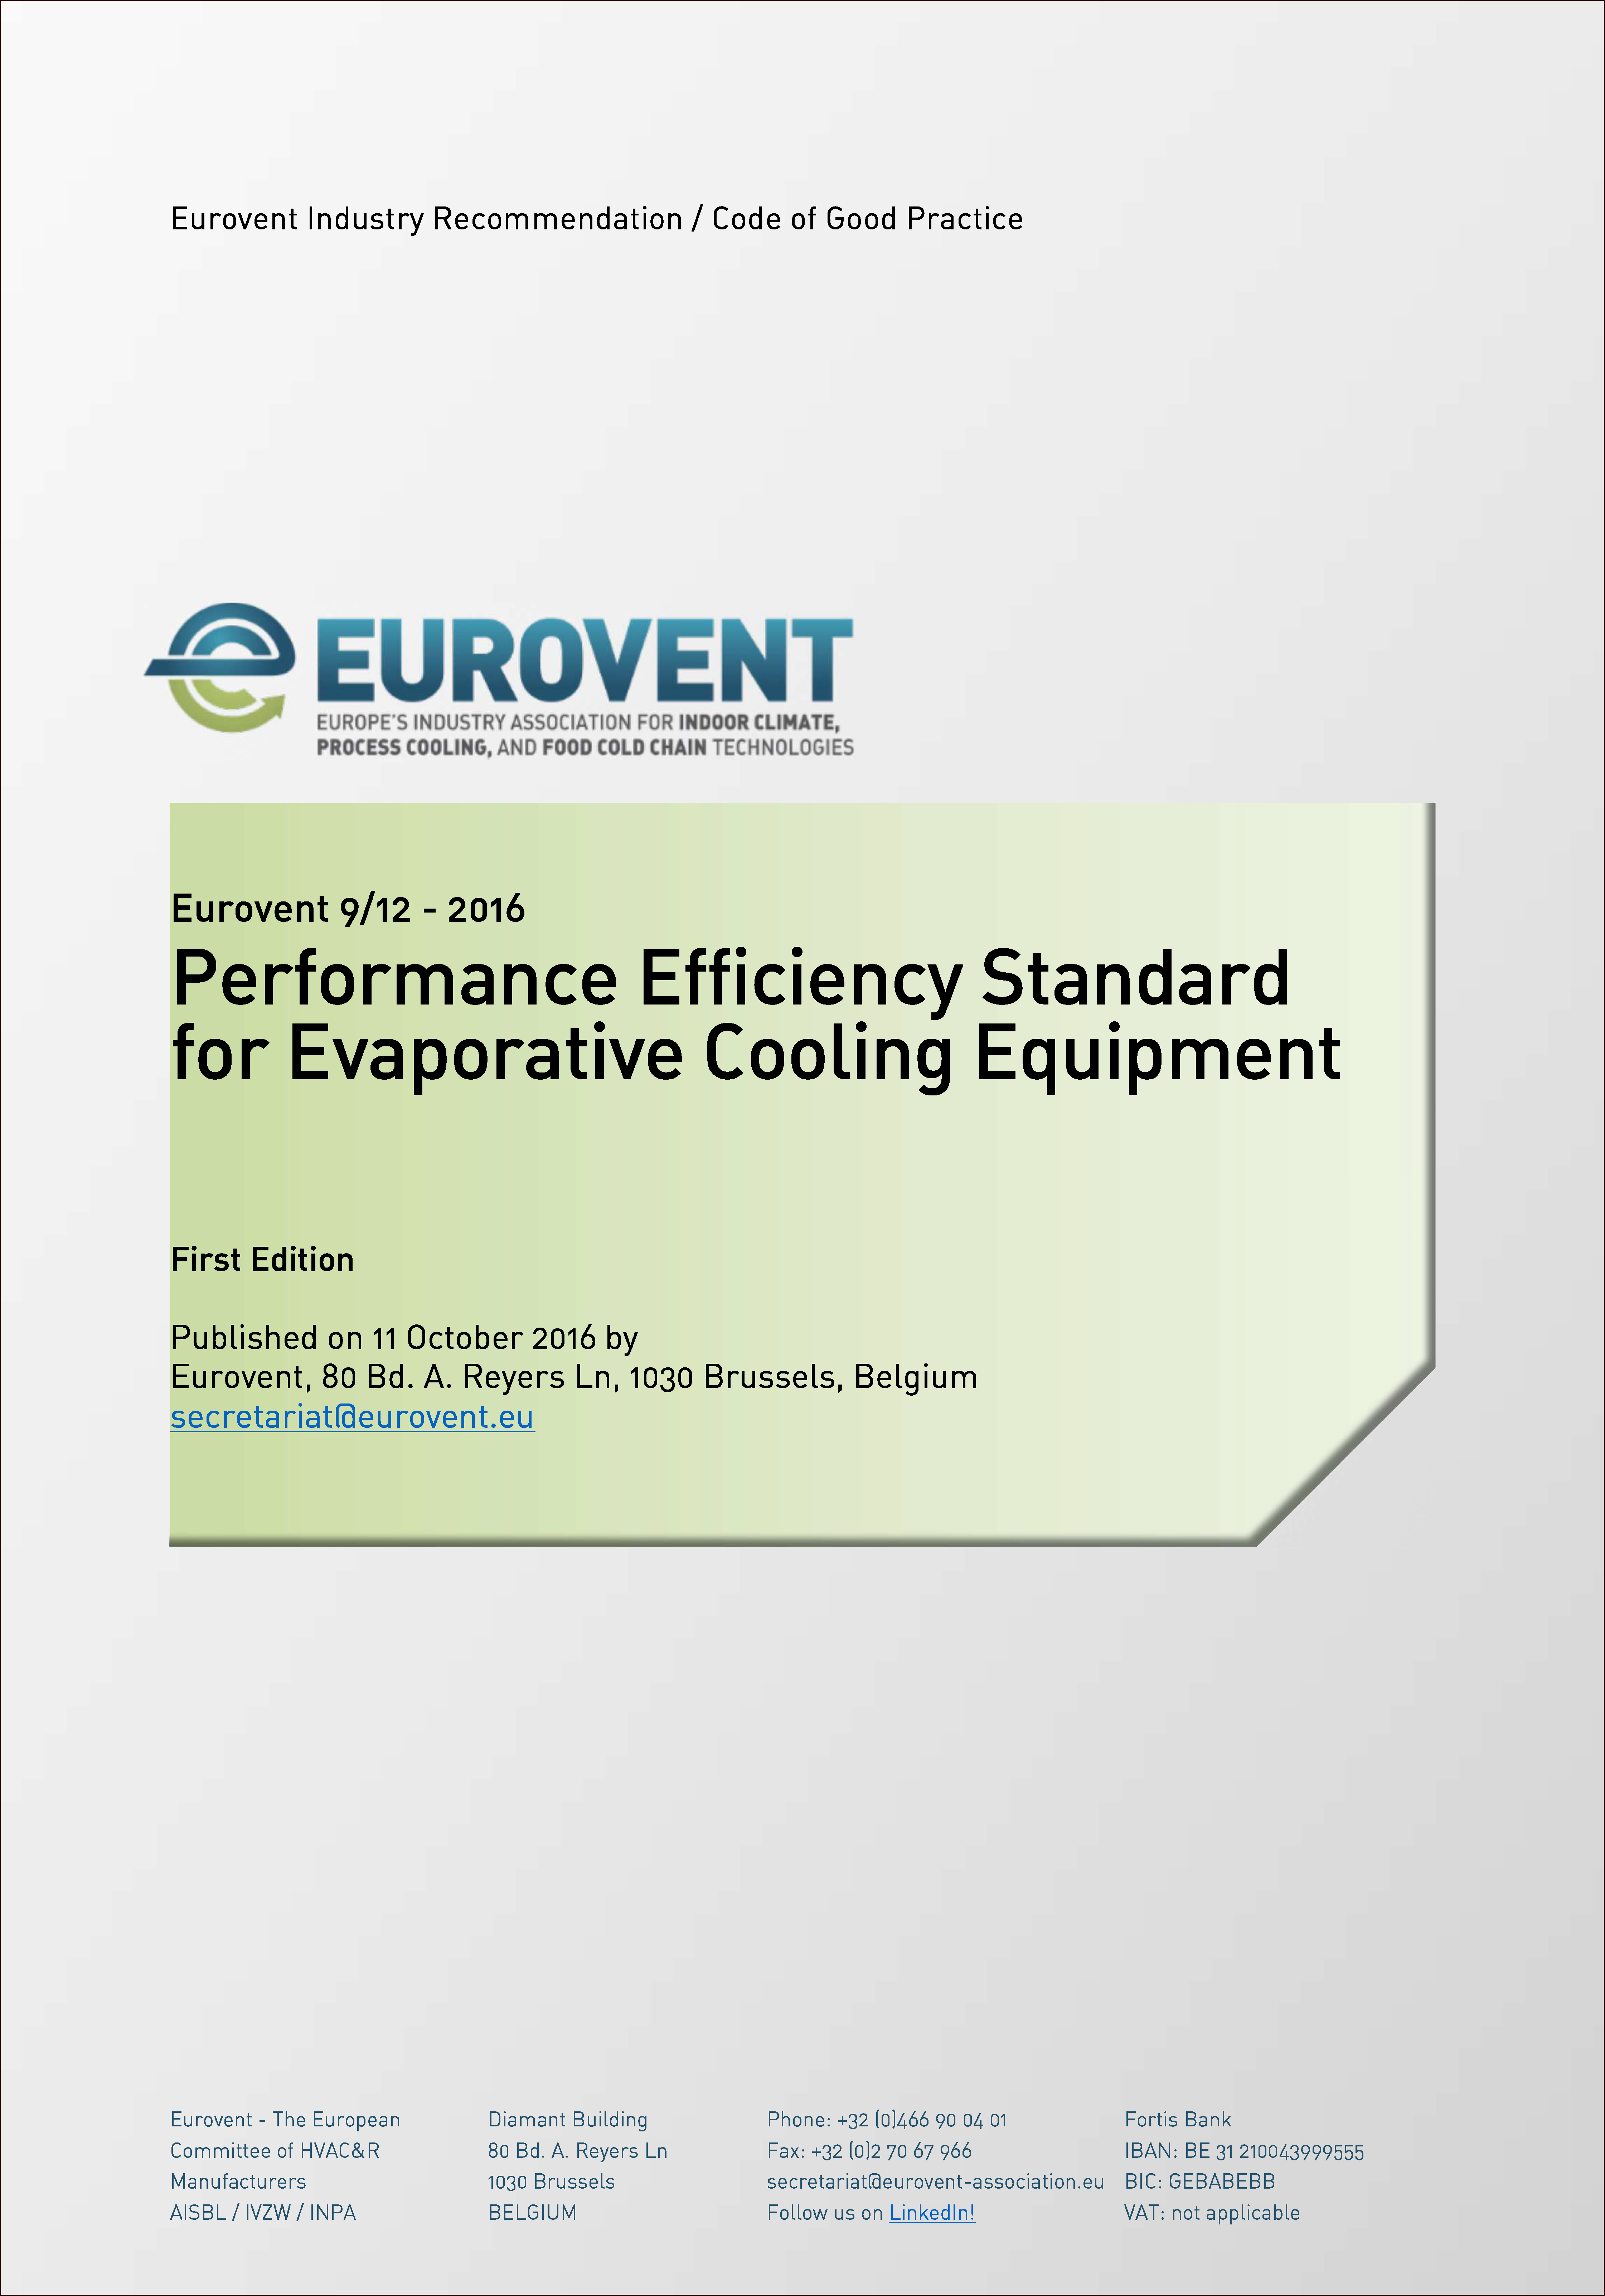 2016 - Performance Efficiency Standard for Evaporative Cooling Equipment